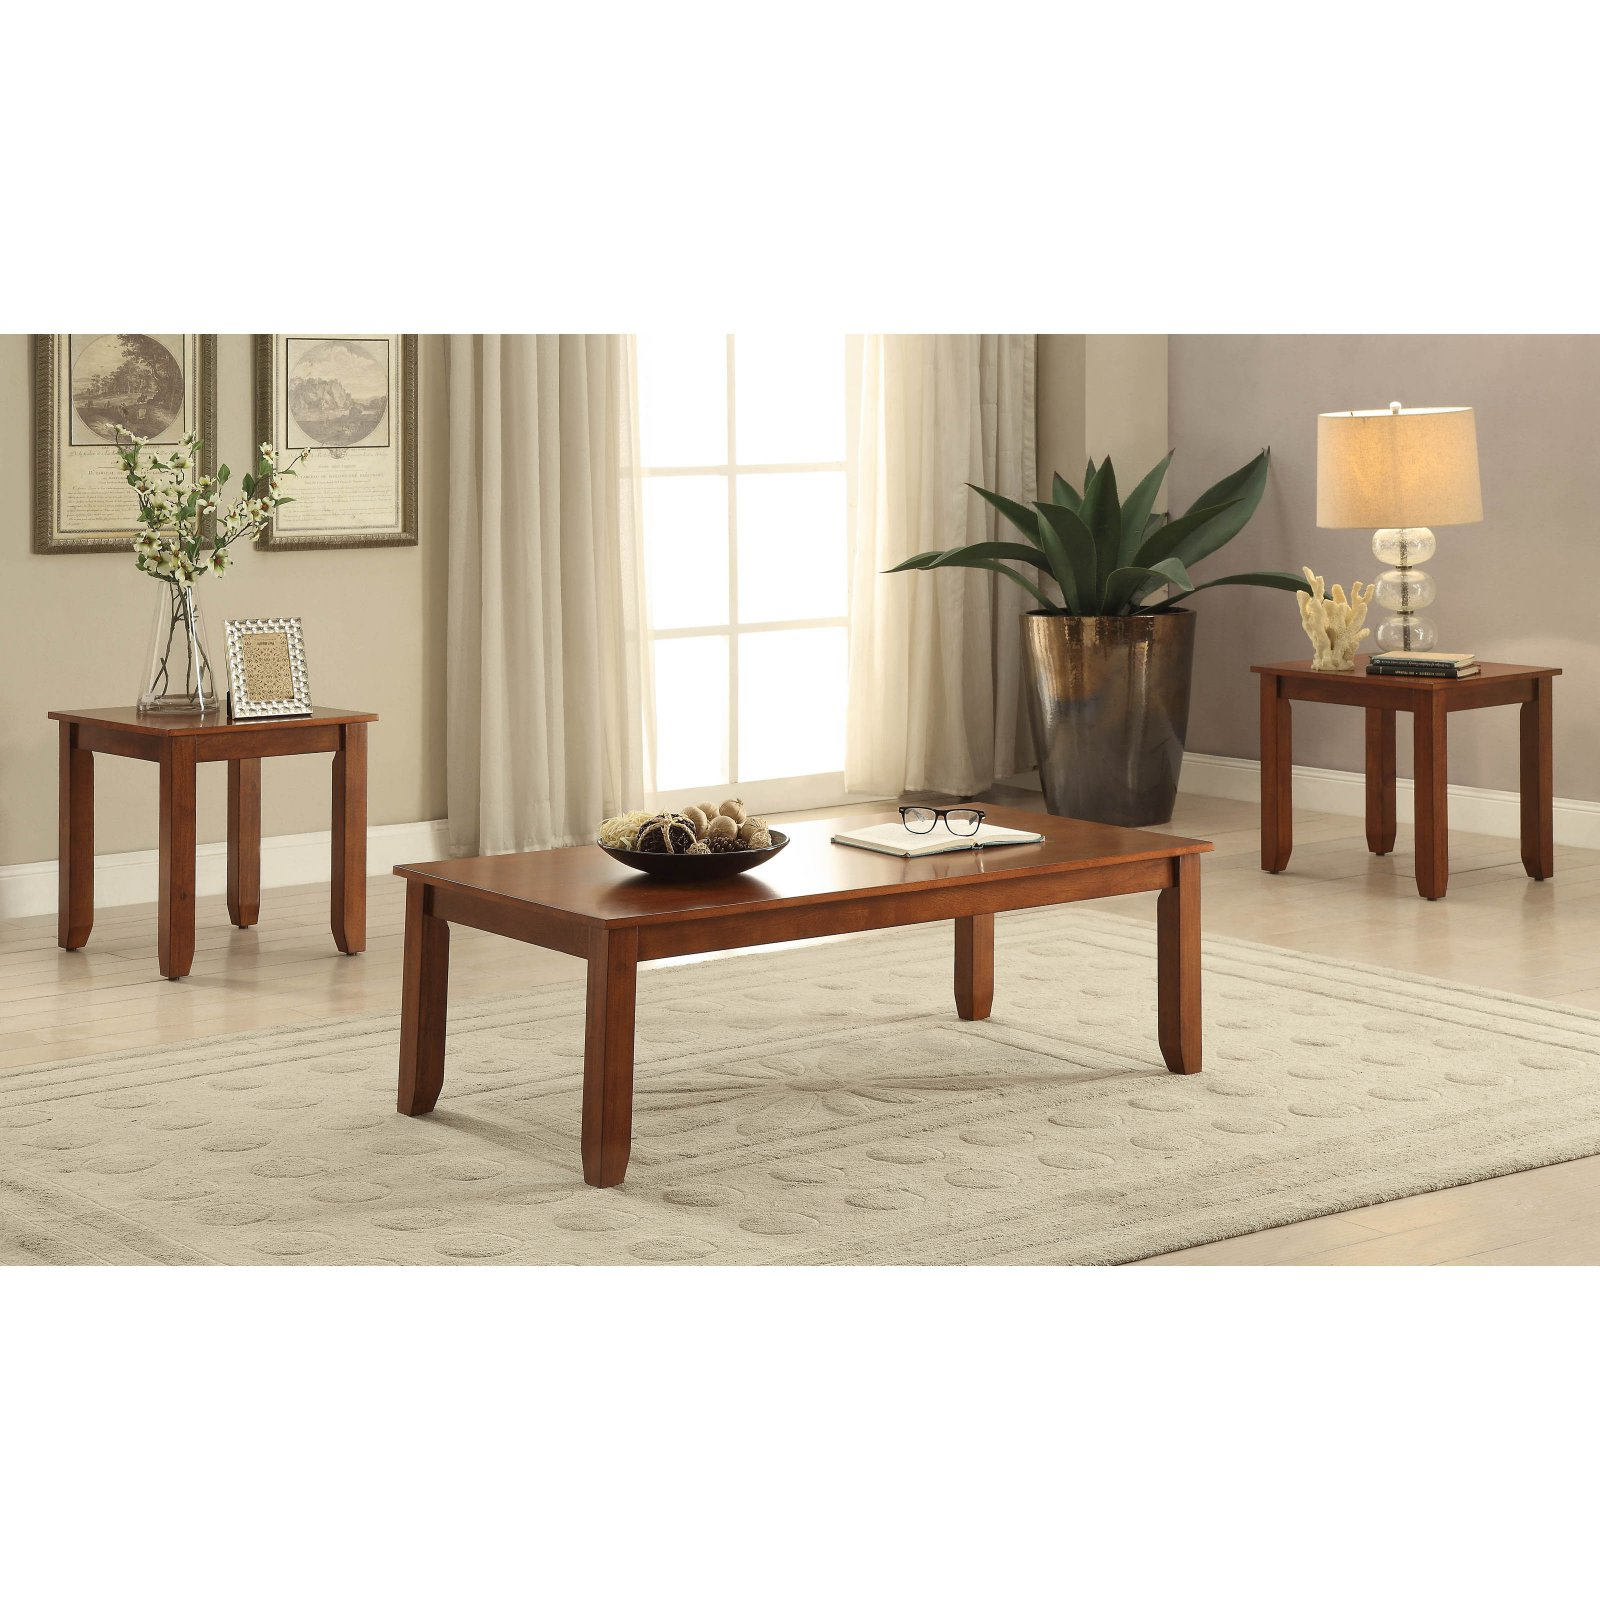 ACME Maine 3 Piece Pack Coffee End Table Set Cherry  sc 1 st  Walmart.com & ACME Maine 3 Piece Pack Coffee End Table Set Cherry - Walmart.com